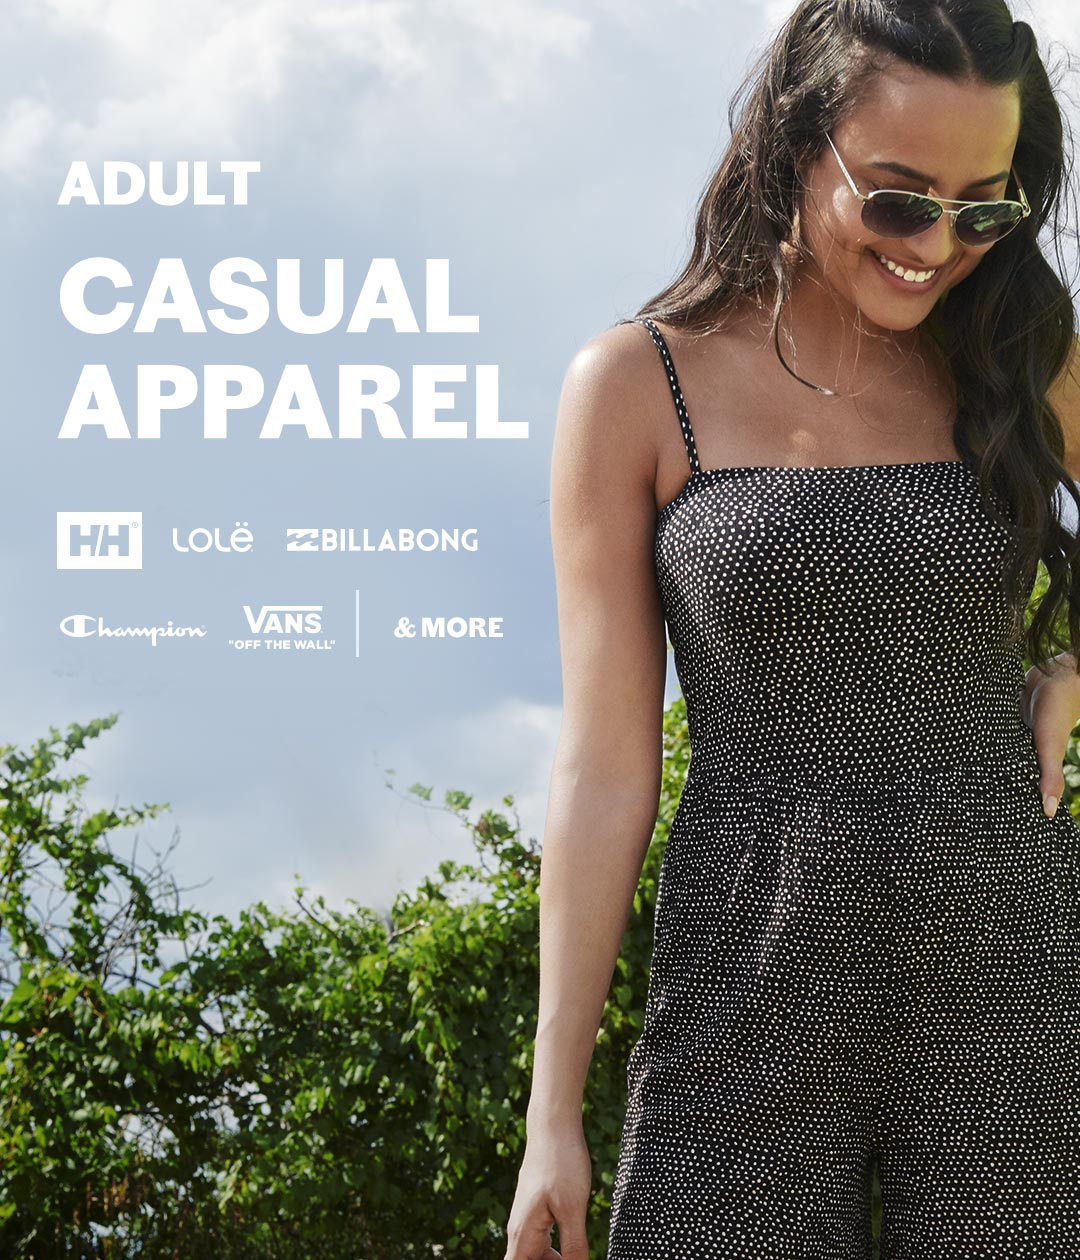 Casual apparel for adults